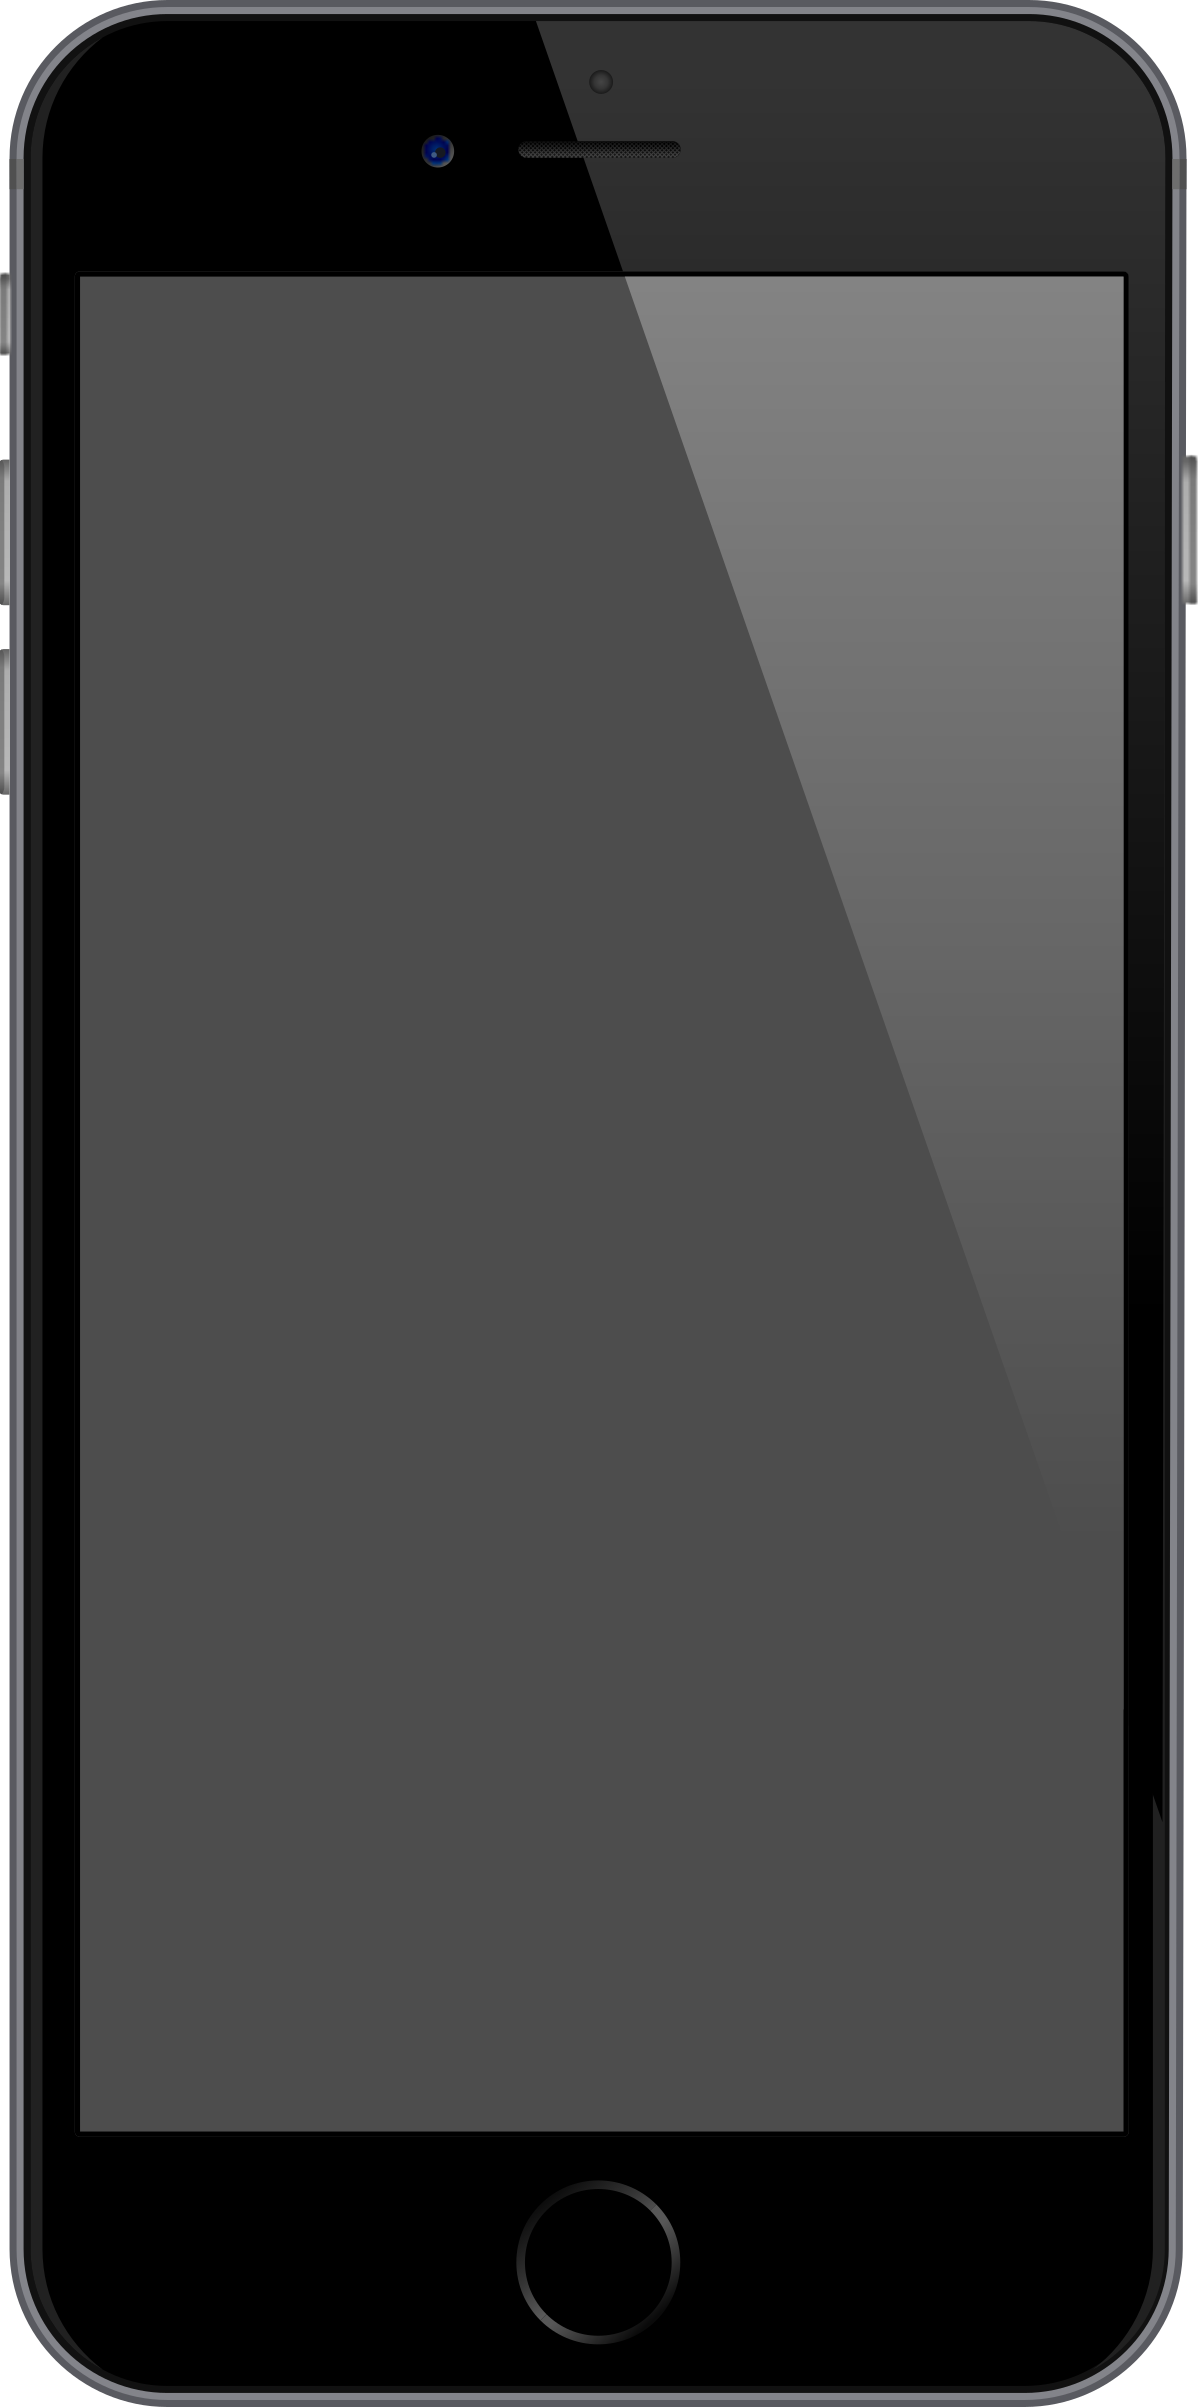 File:IPhone 6 Plus Space Gray.svg.